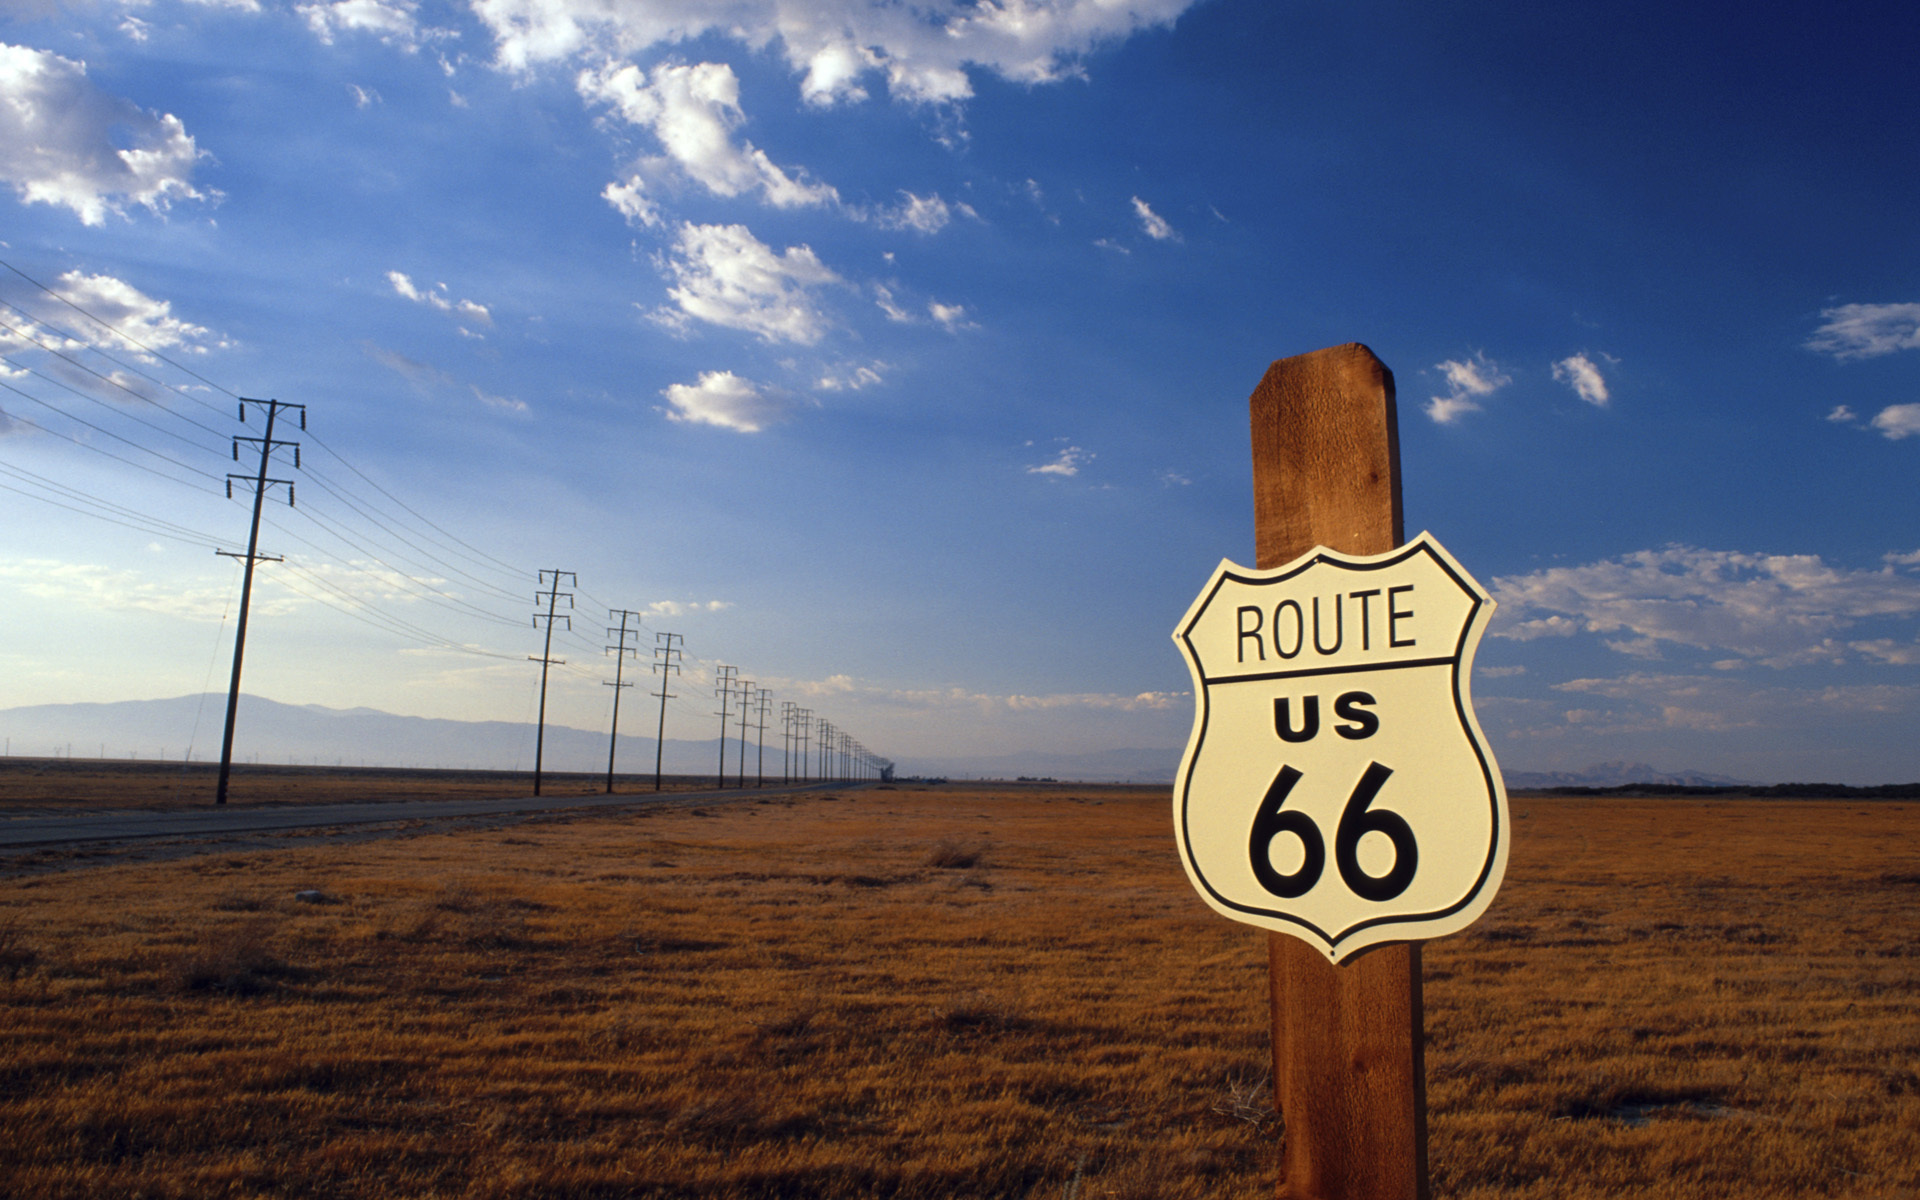 Skeedz Wallpaper - Route 66.